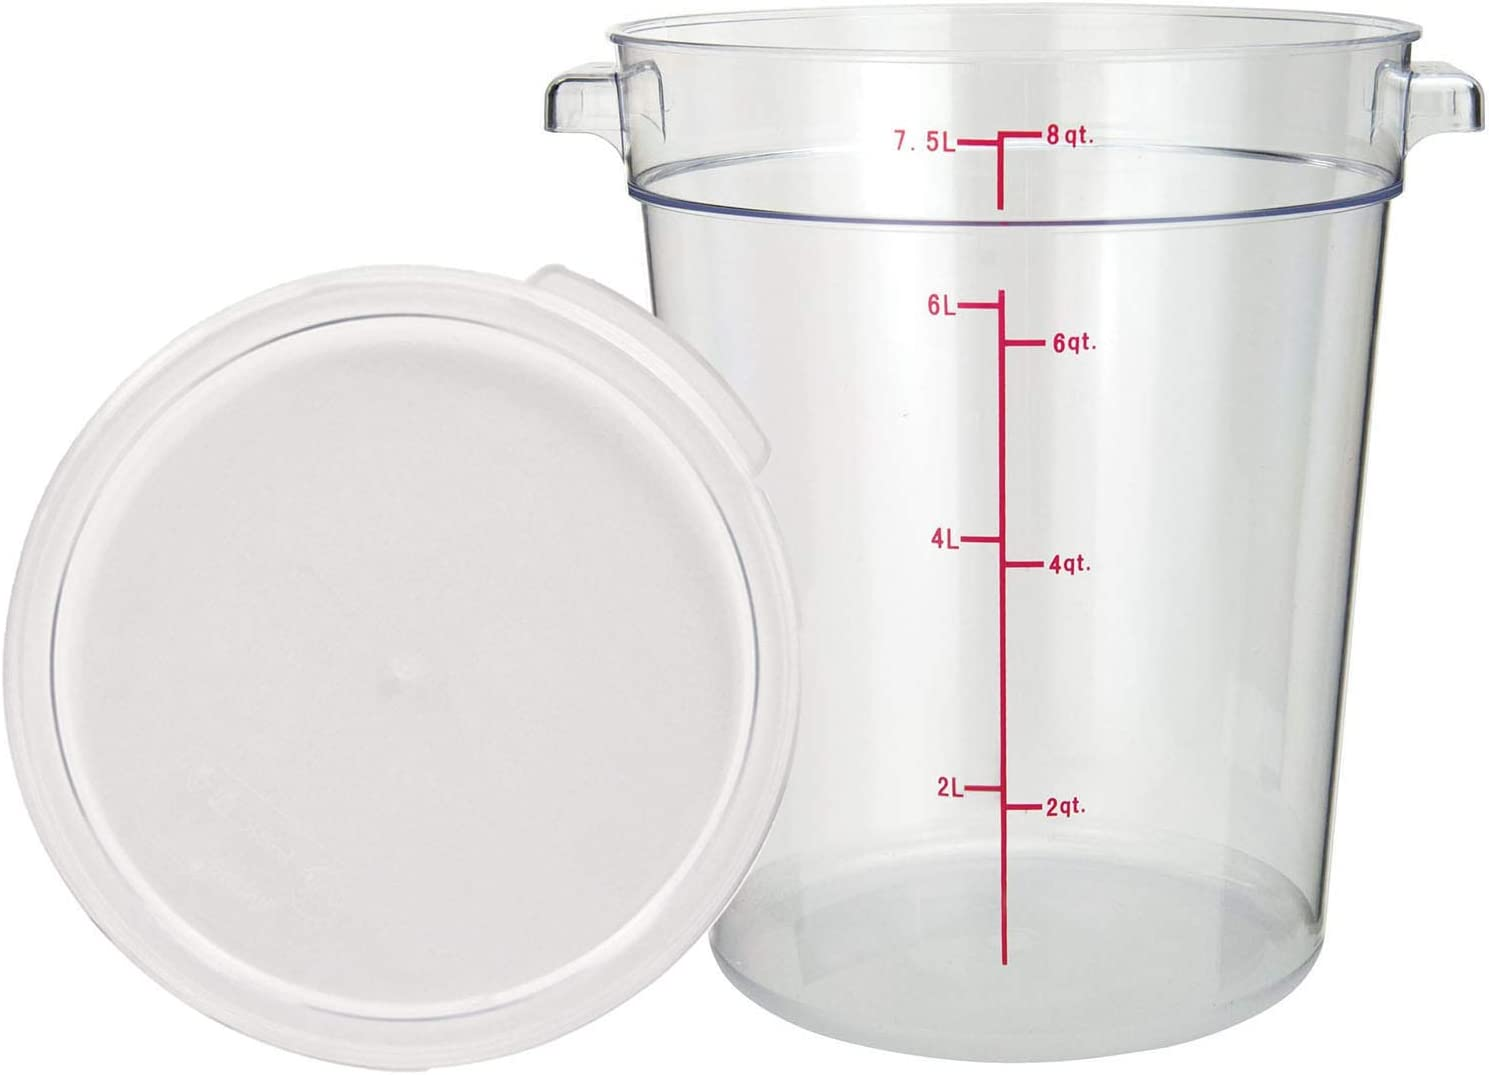 Tiger Tampa Mall Chef 8 Quart Commercial Max 87% OFF Grade Storage Pol Food Clear Round